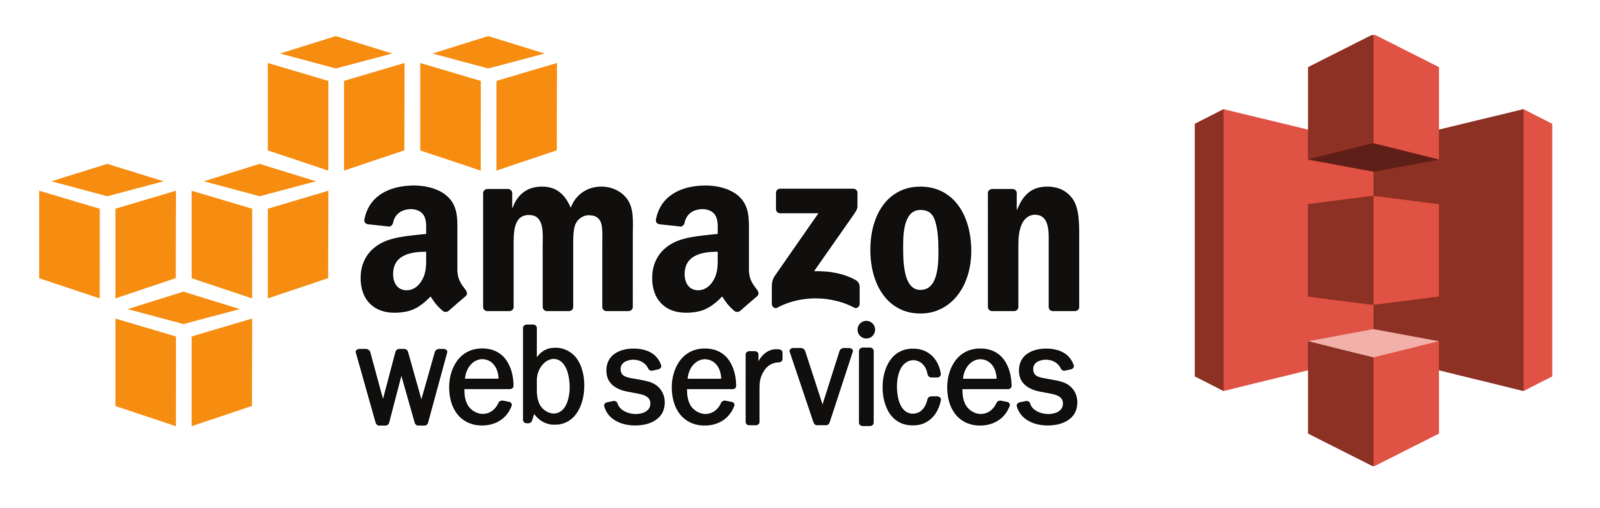 Amazon S3 Transparent Png Clipart Free Download Ywd